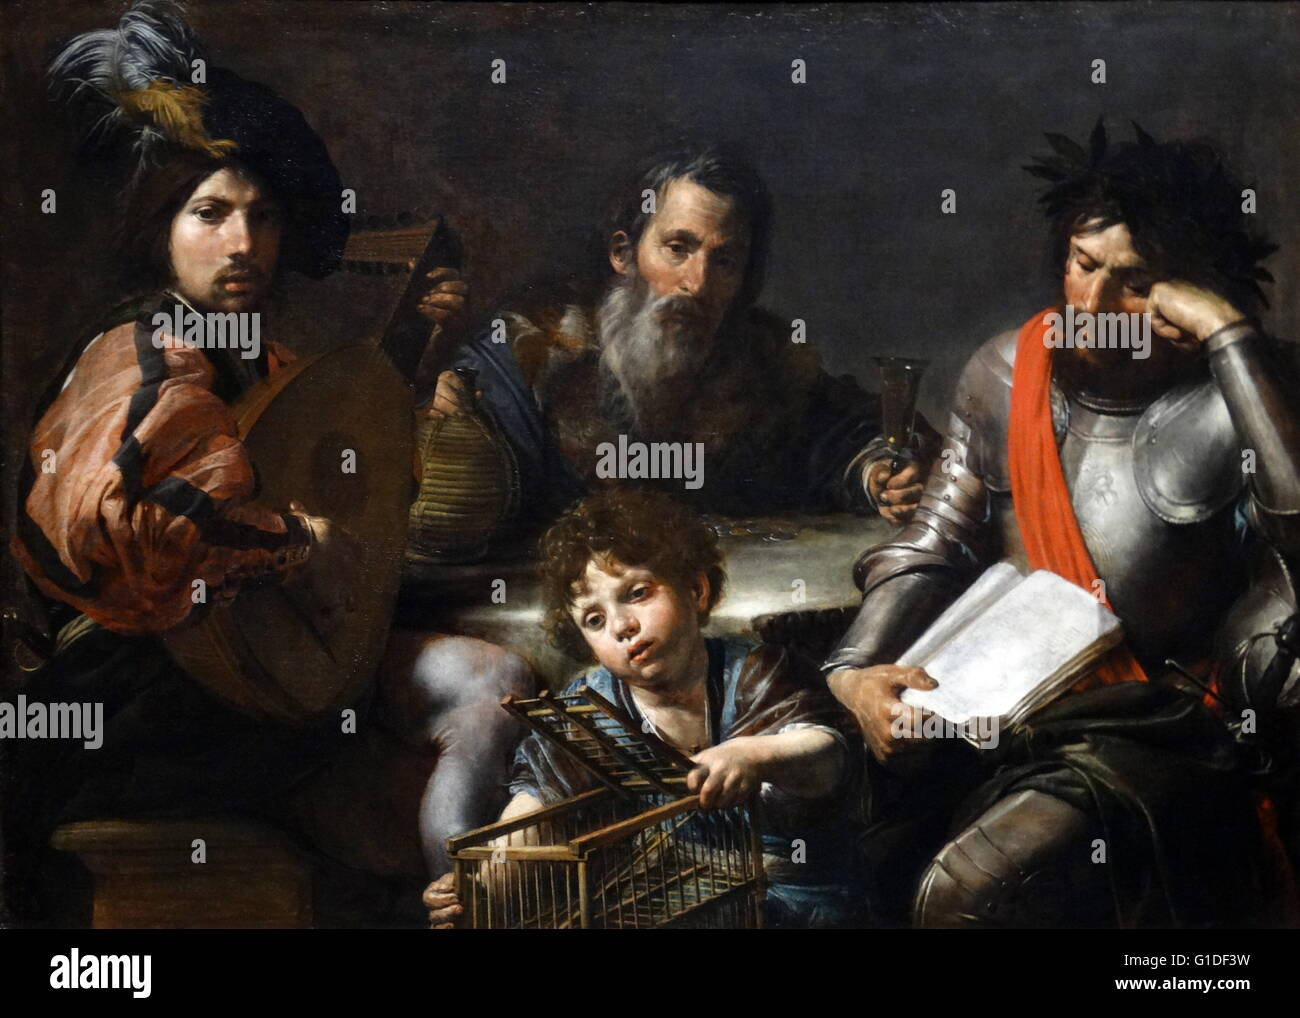 Painting titled 'The Four Ages of Man' by Valentin de Boulogne (1591-1632) a French painter of the tenebrist - Stock Image